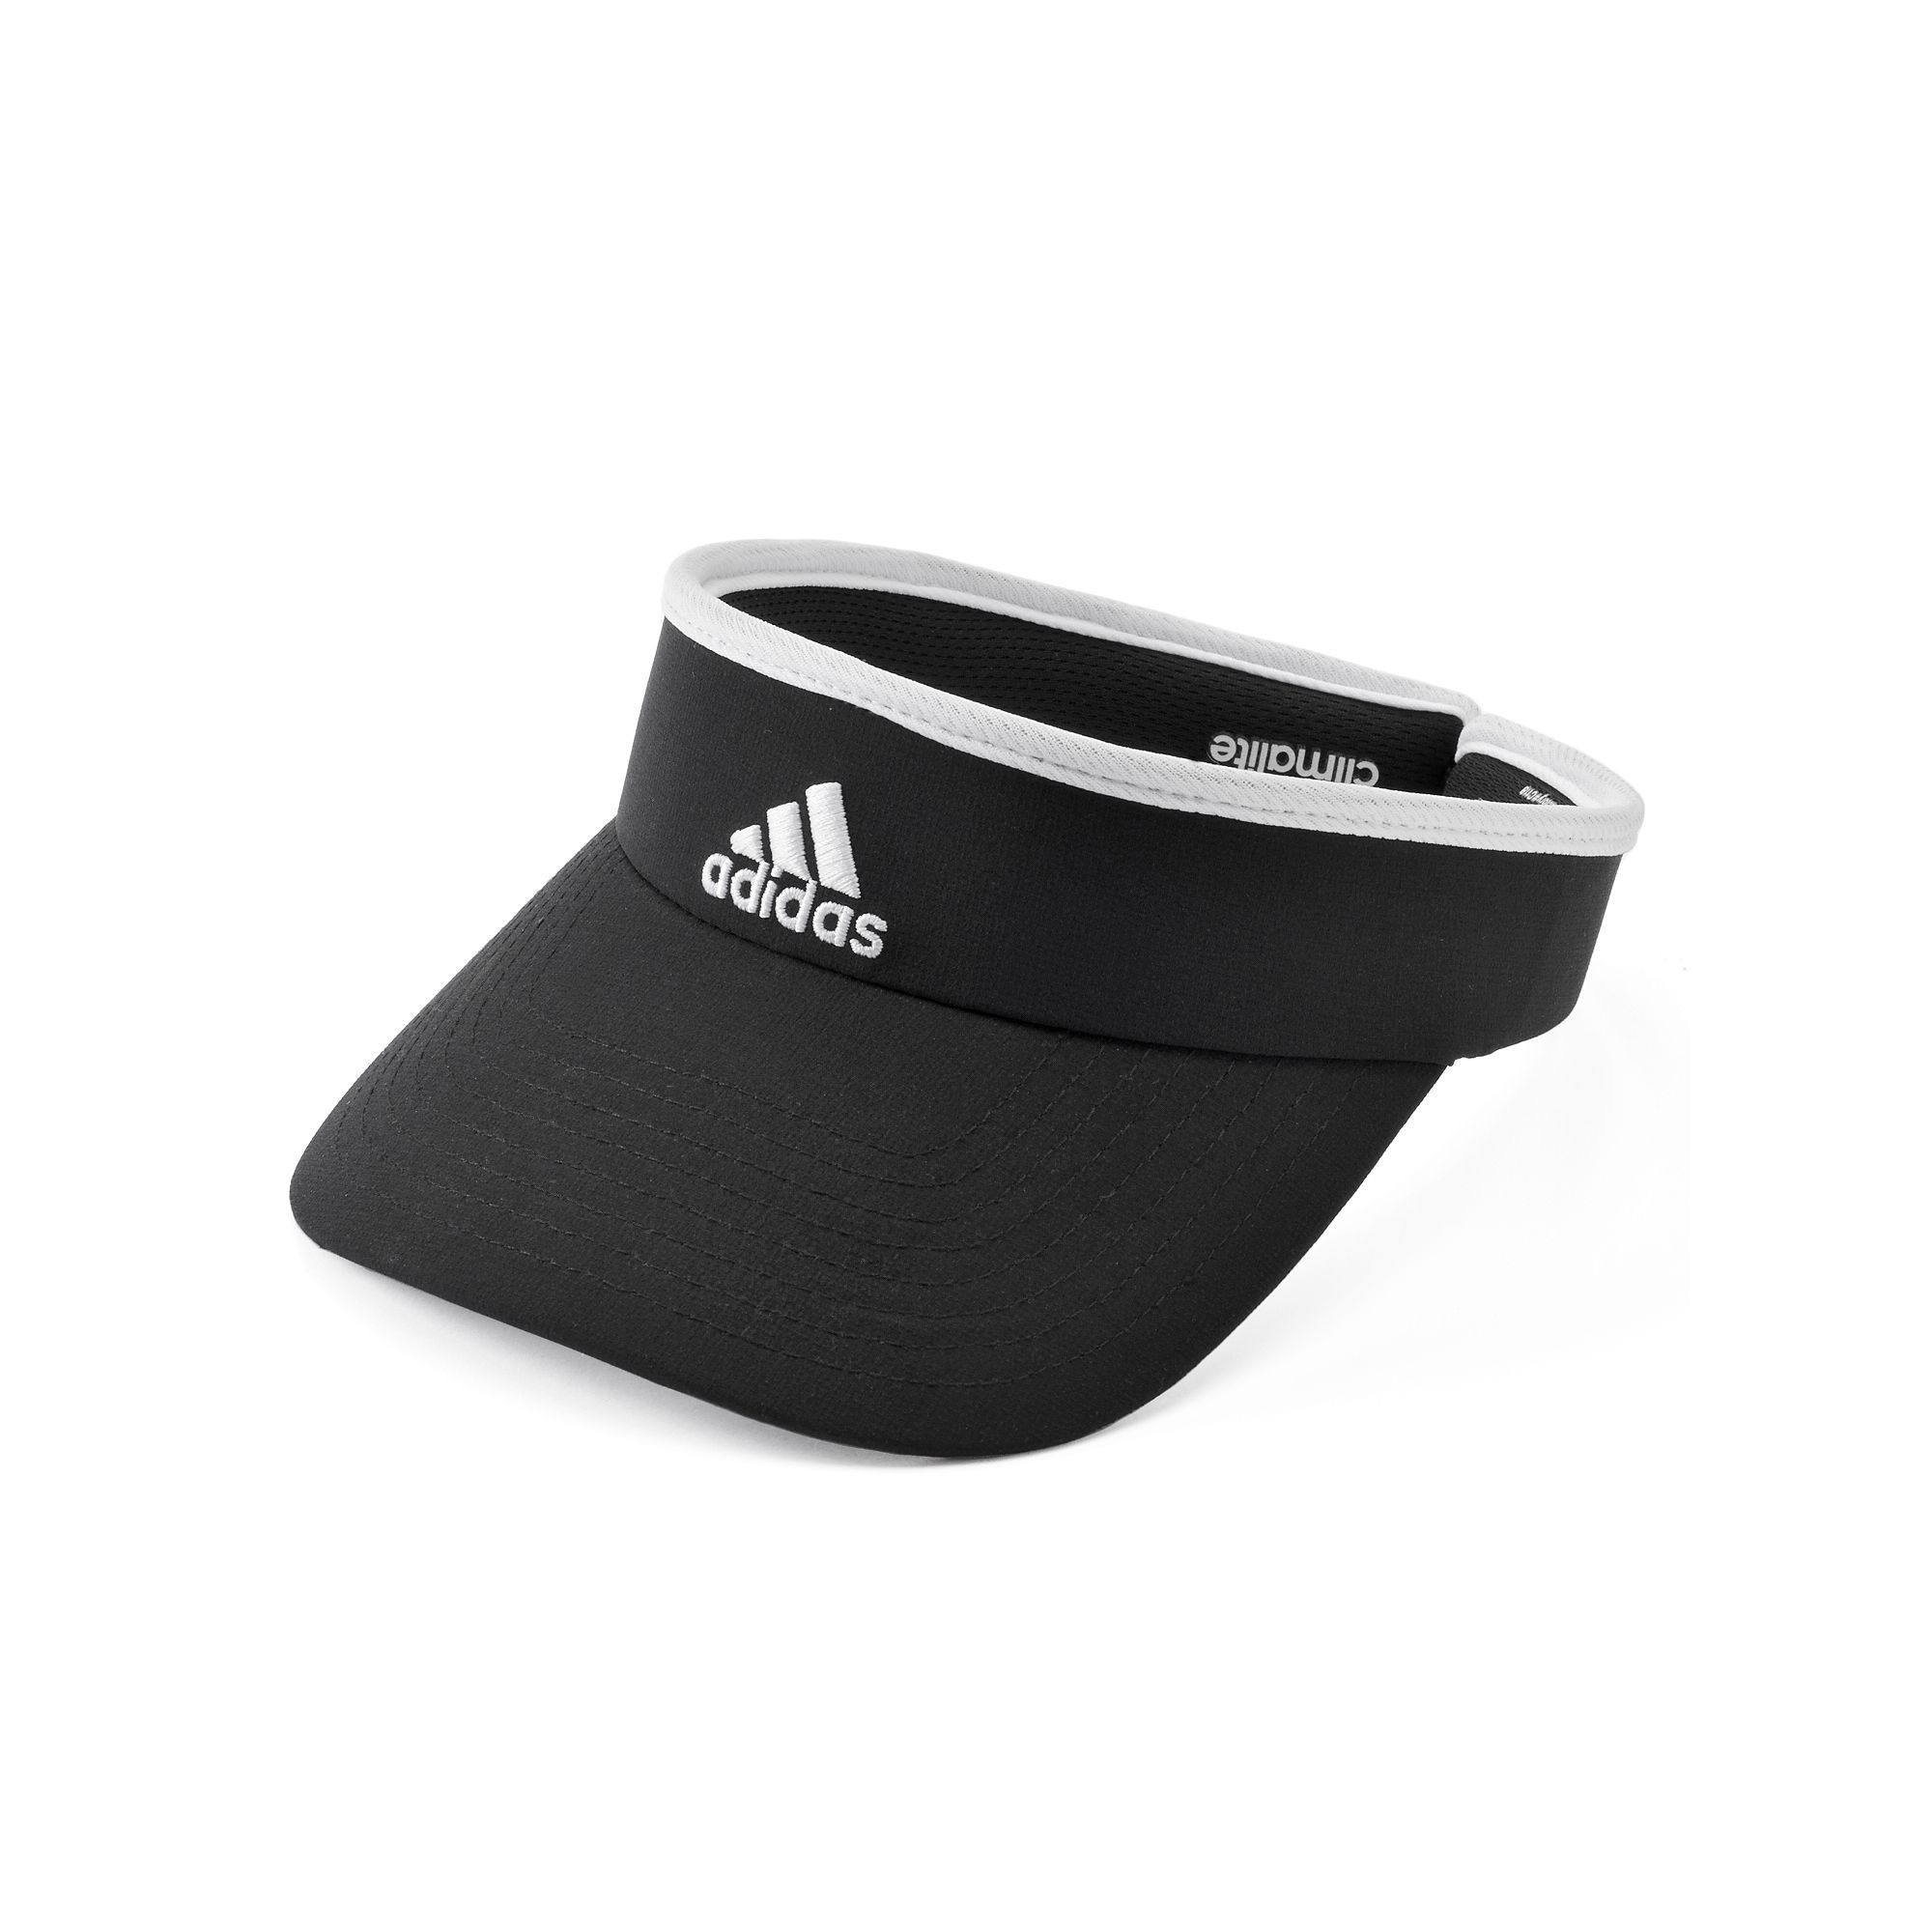 92f47c80 Women's adidas climalite Visor in 2019 | Products | Adidas women ...